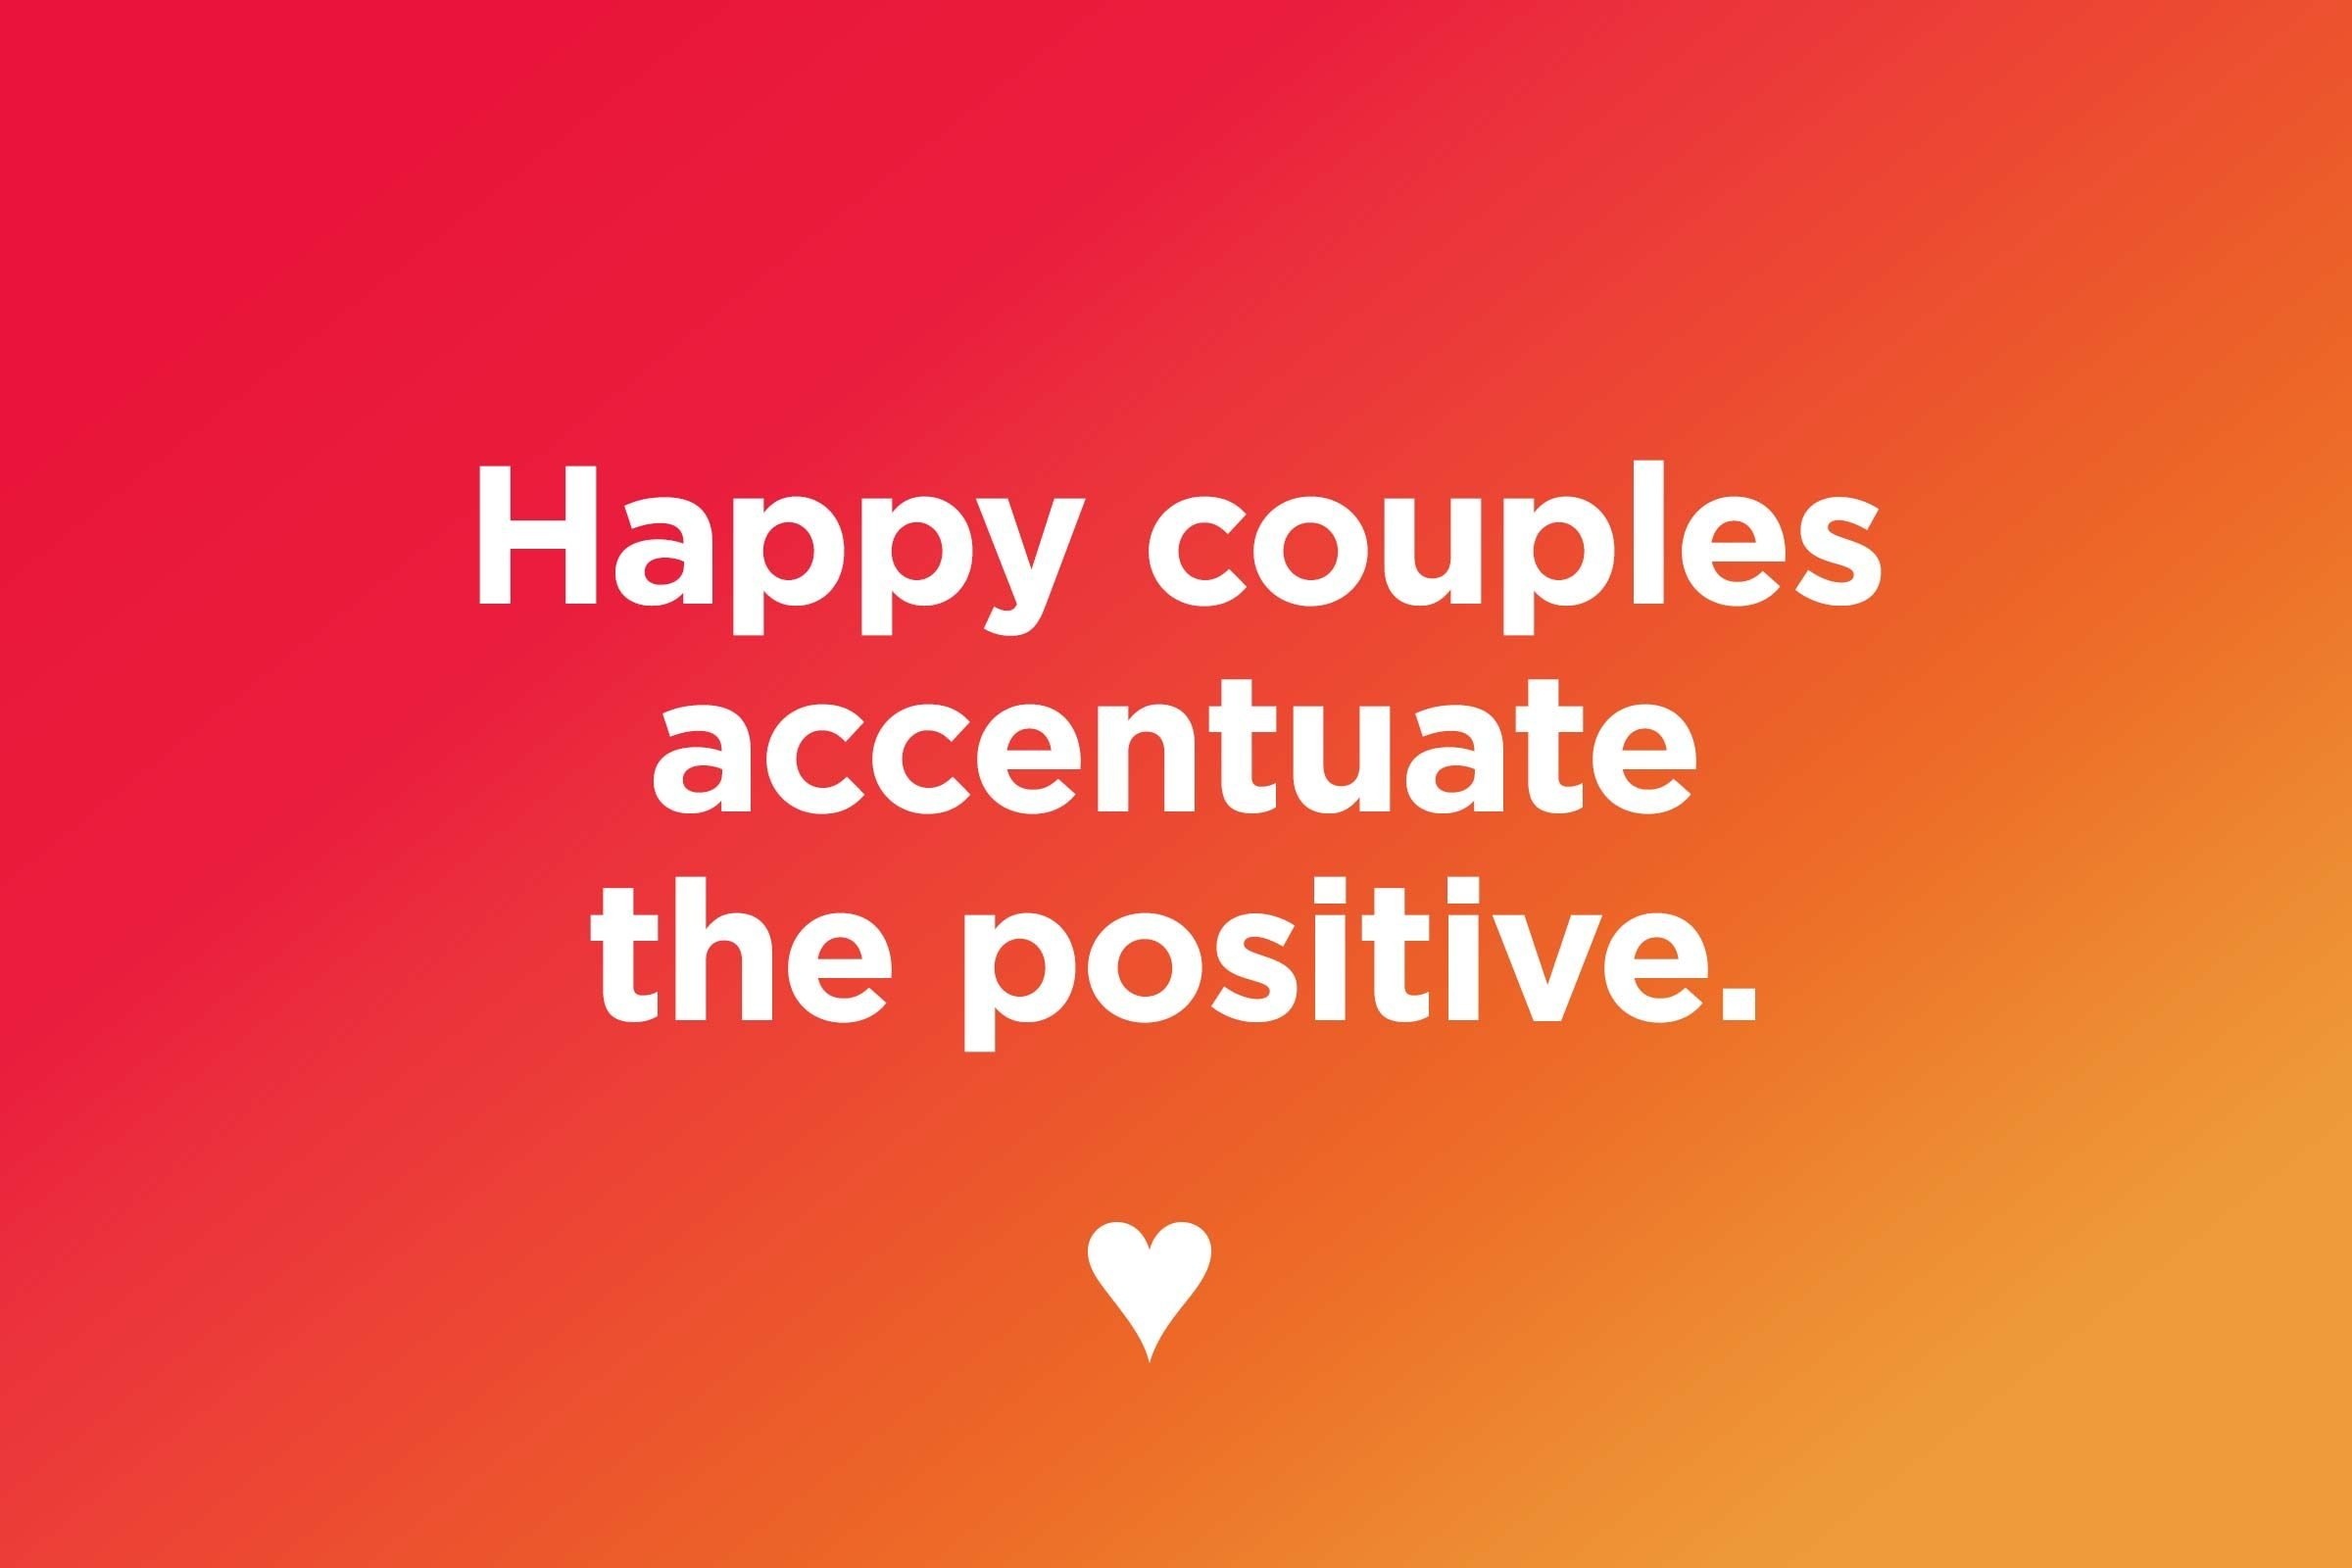 Positive things about relationships